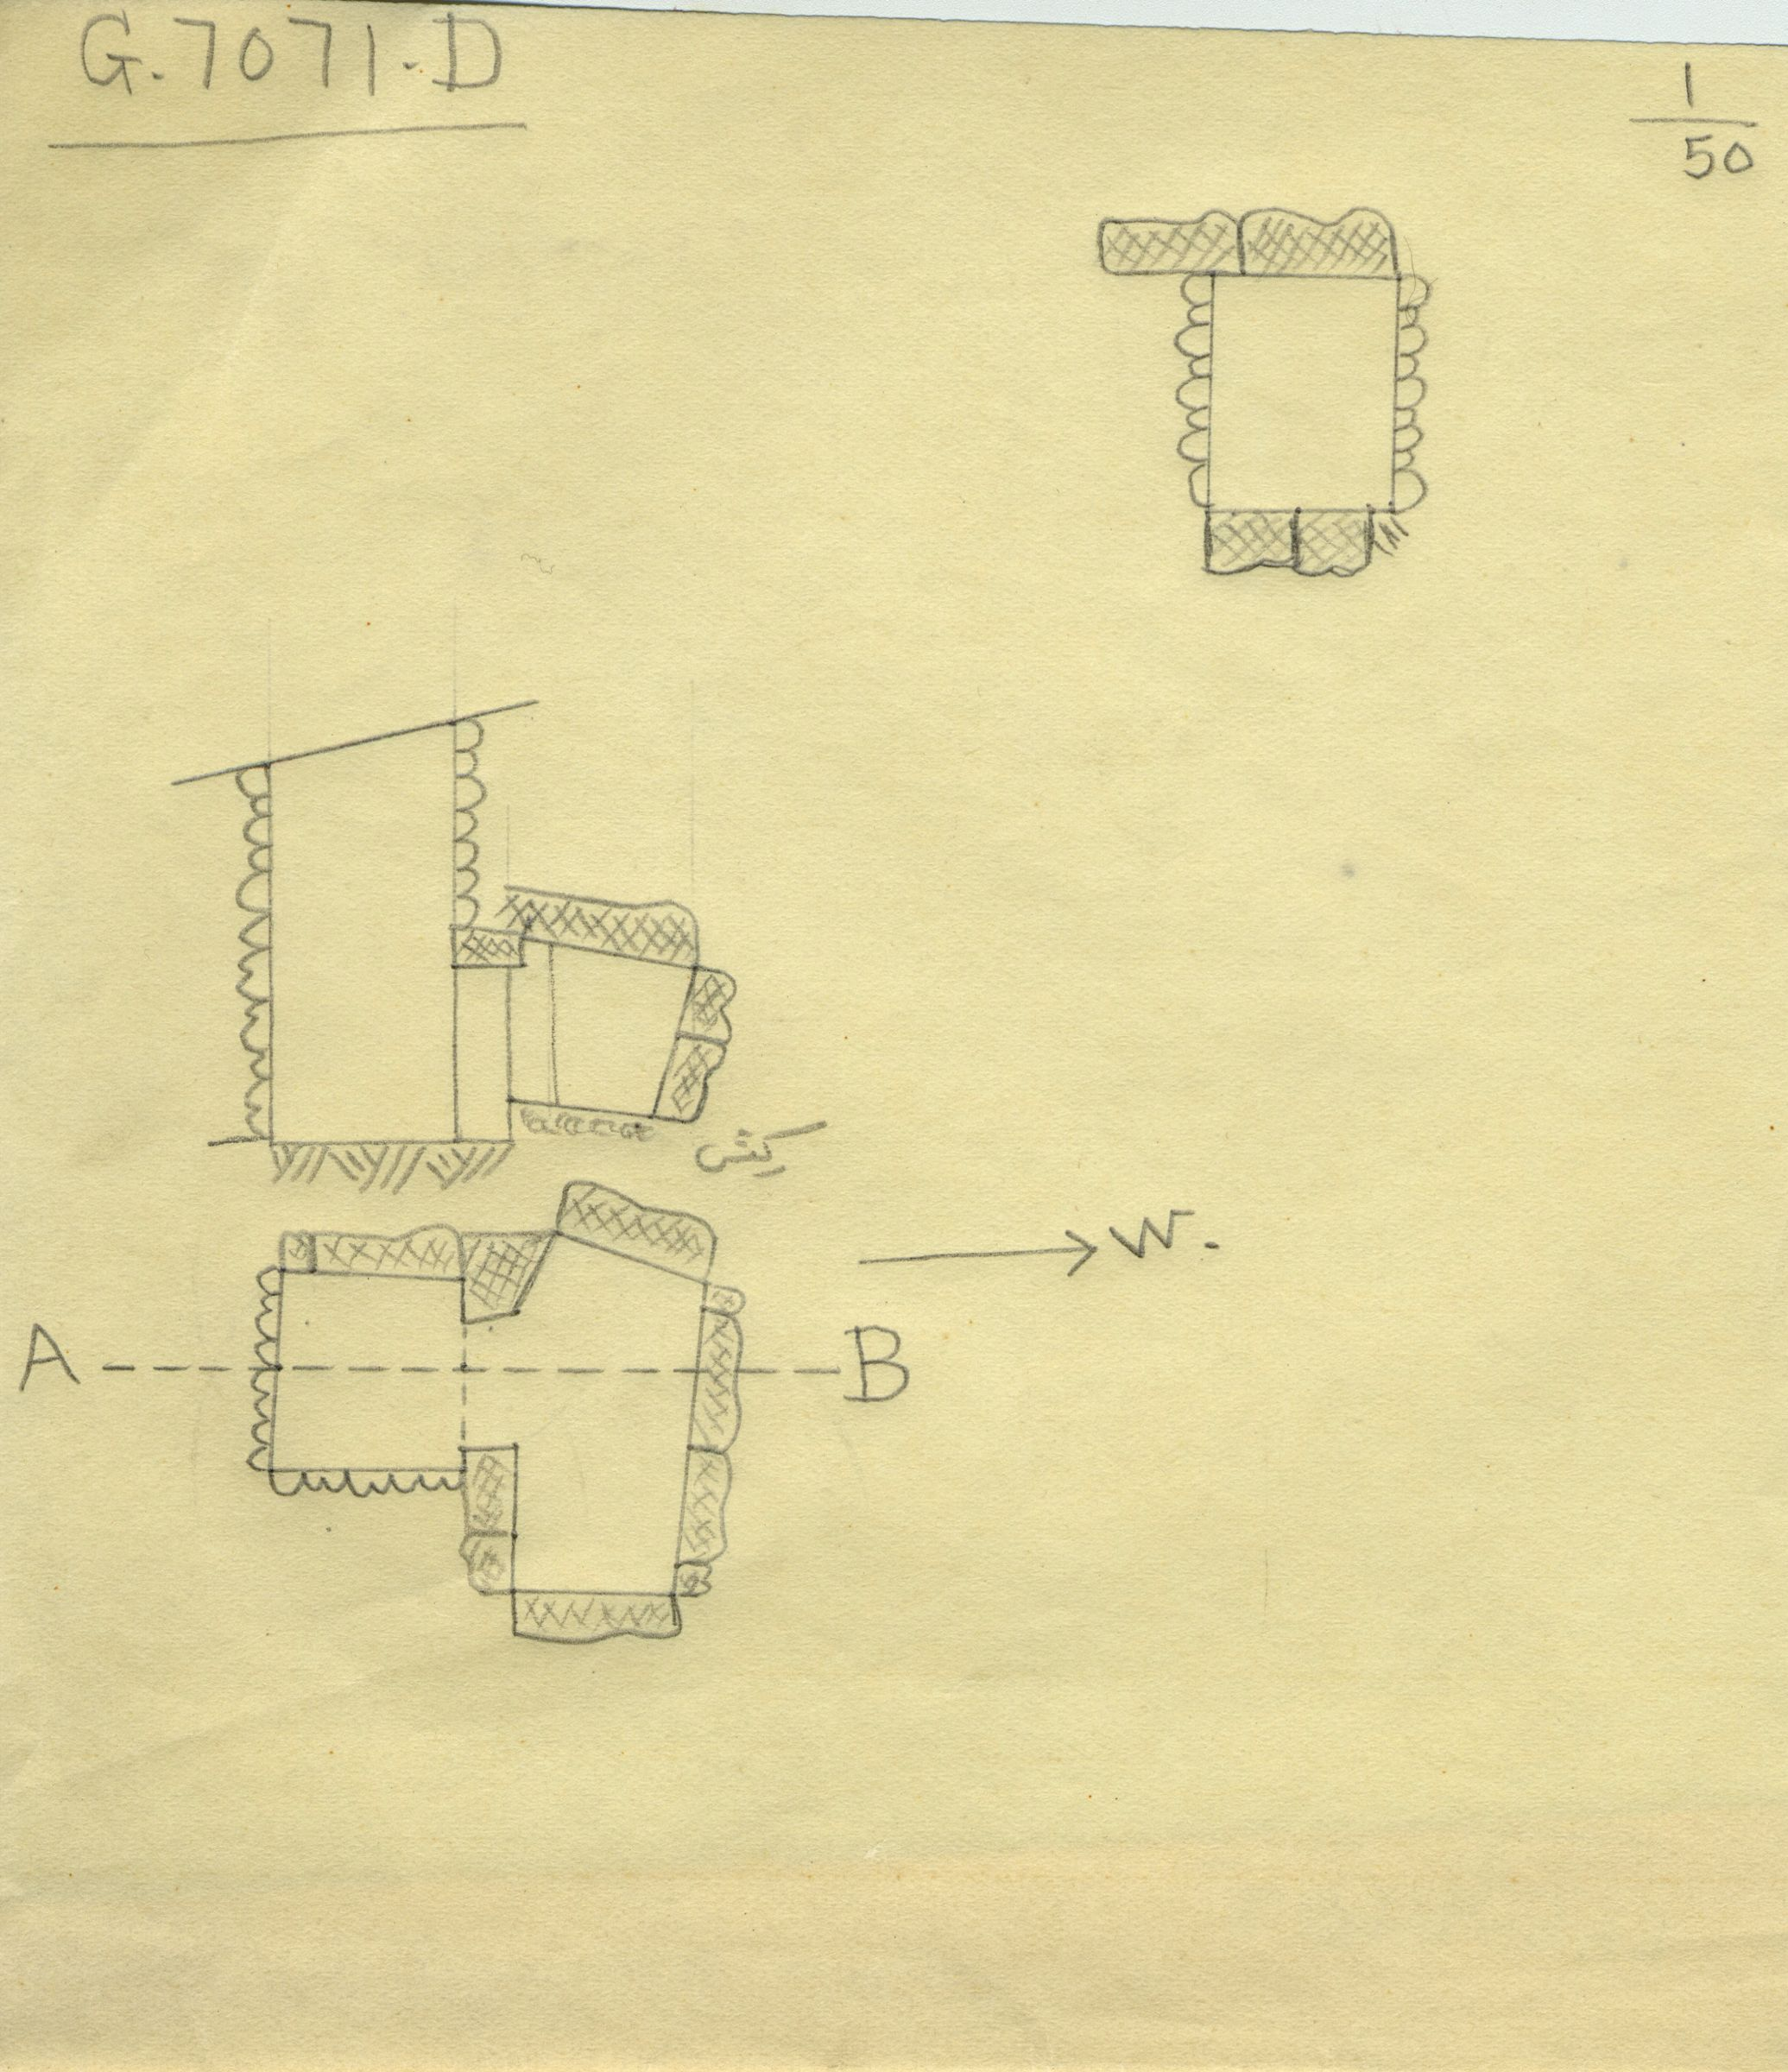 Maps and plans: G 7071, Shaft D